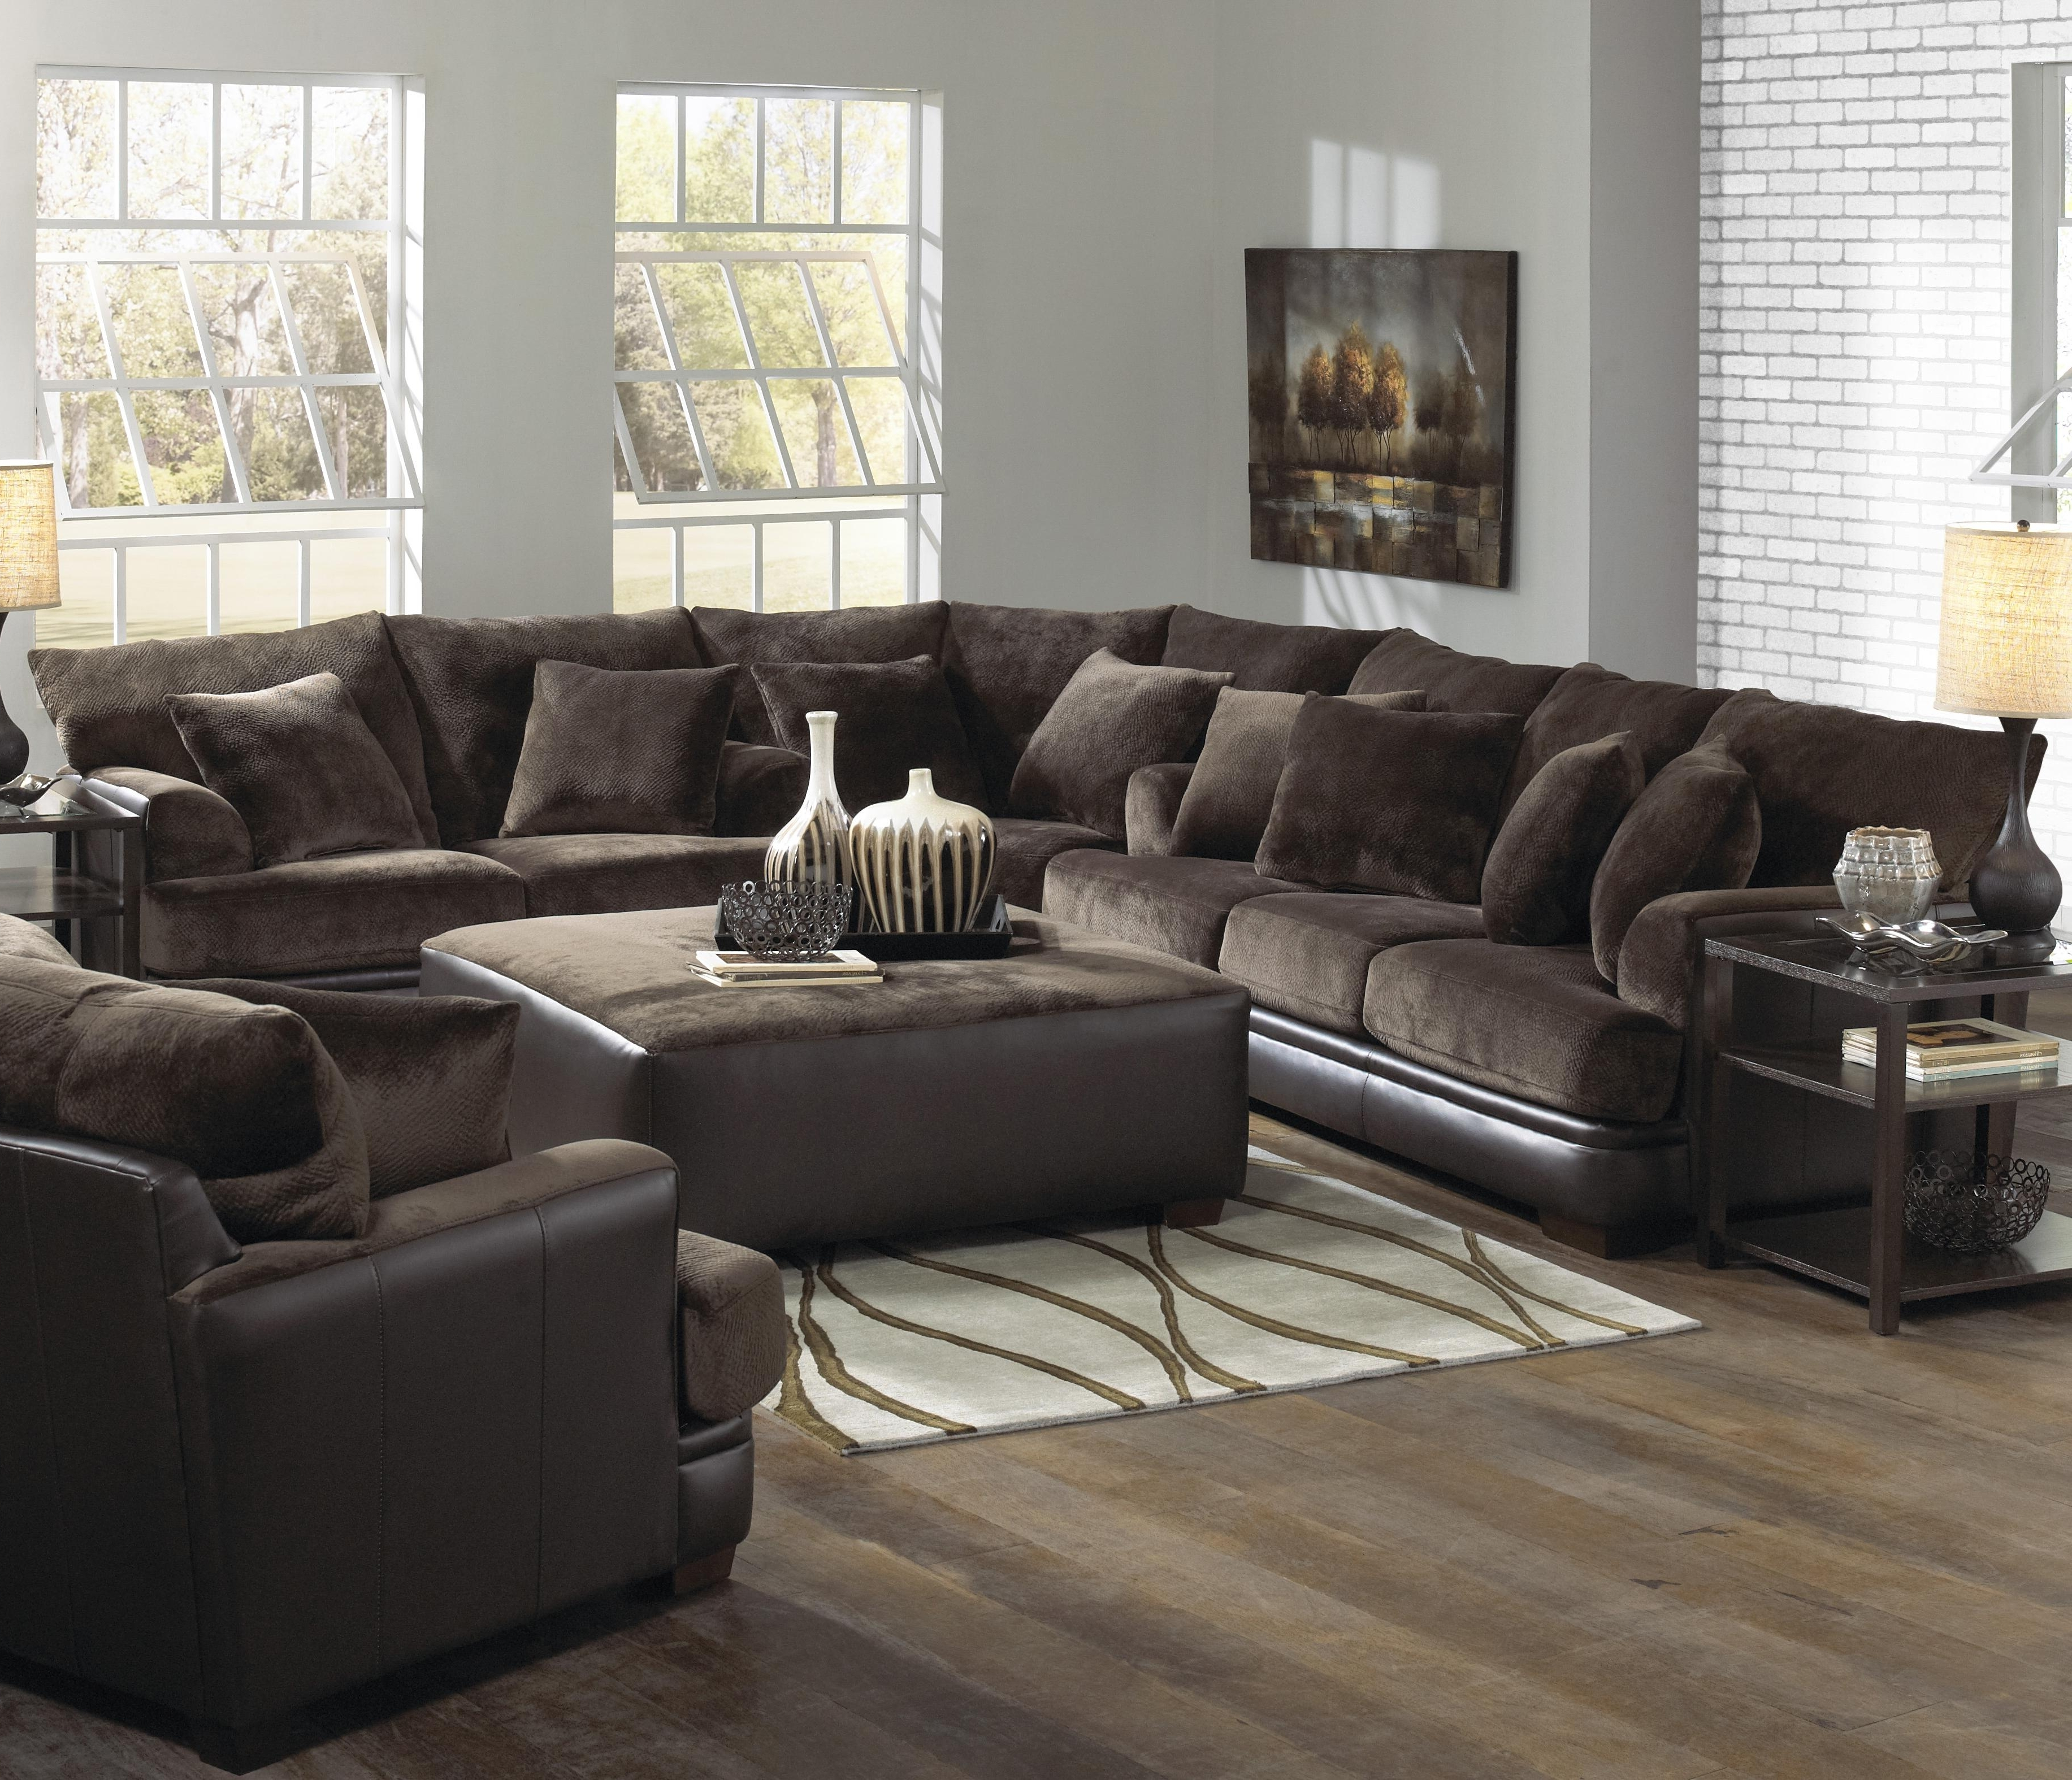 Most Recent U Shaped Leather Sectional Sofas Inside Sofa : Fabric Sectional Leather Sectional U Shaped Sectional With (View 7 of 15)